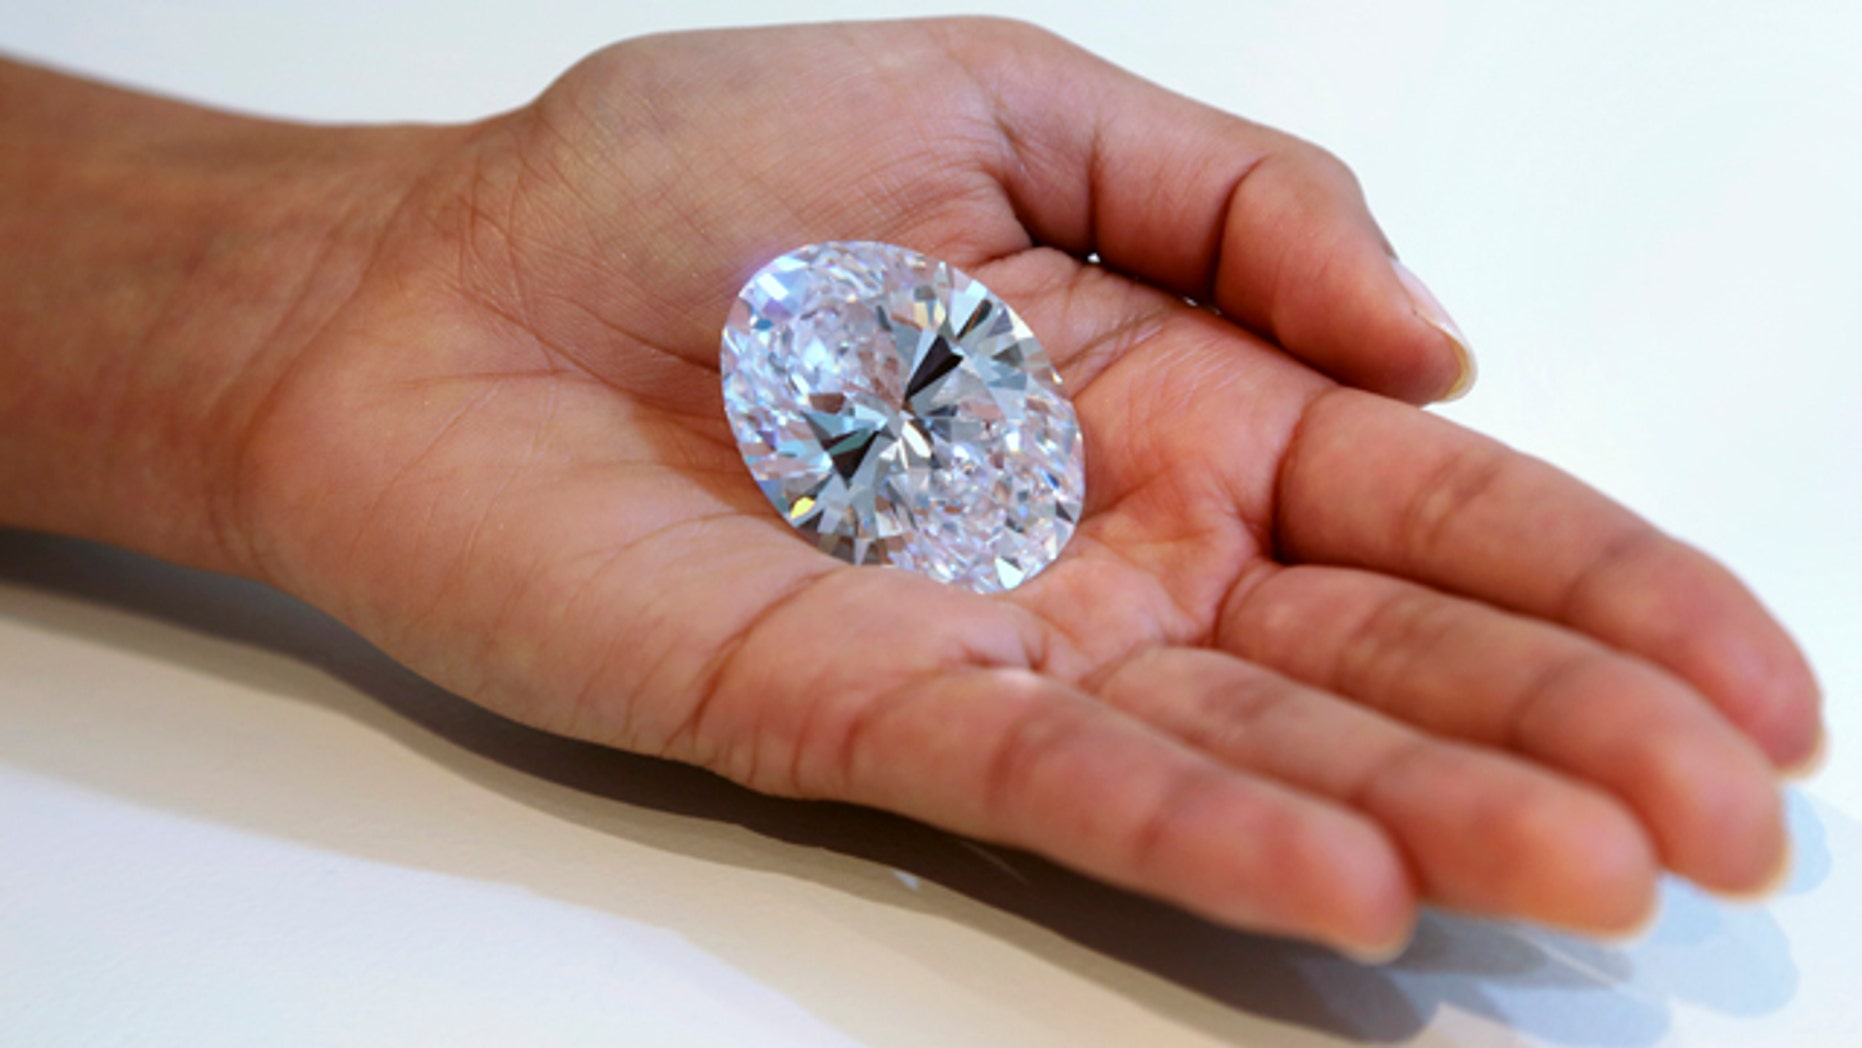 Sept. 4, 2013: A 118-carat white diamond is on display at Sotheby's, a New York auction house.